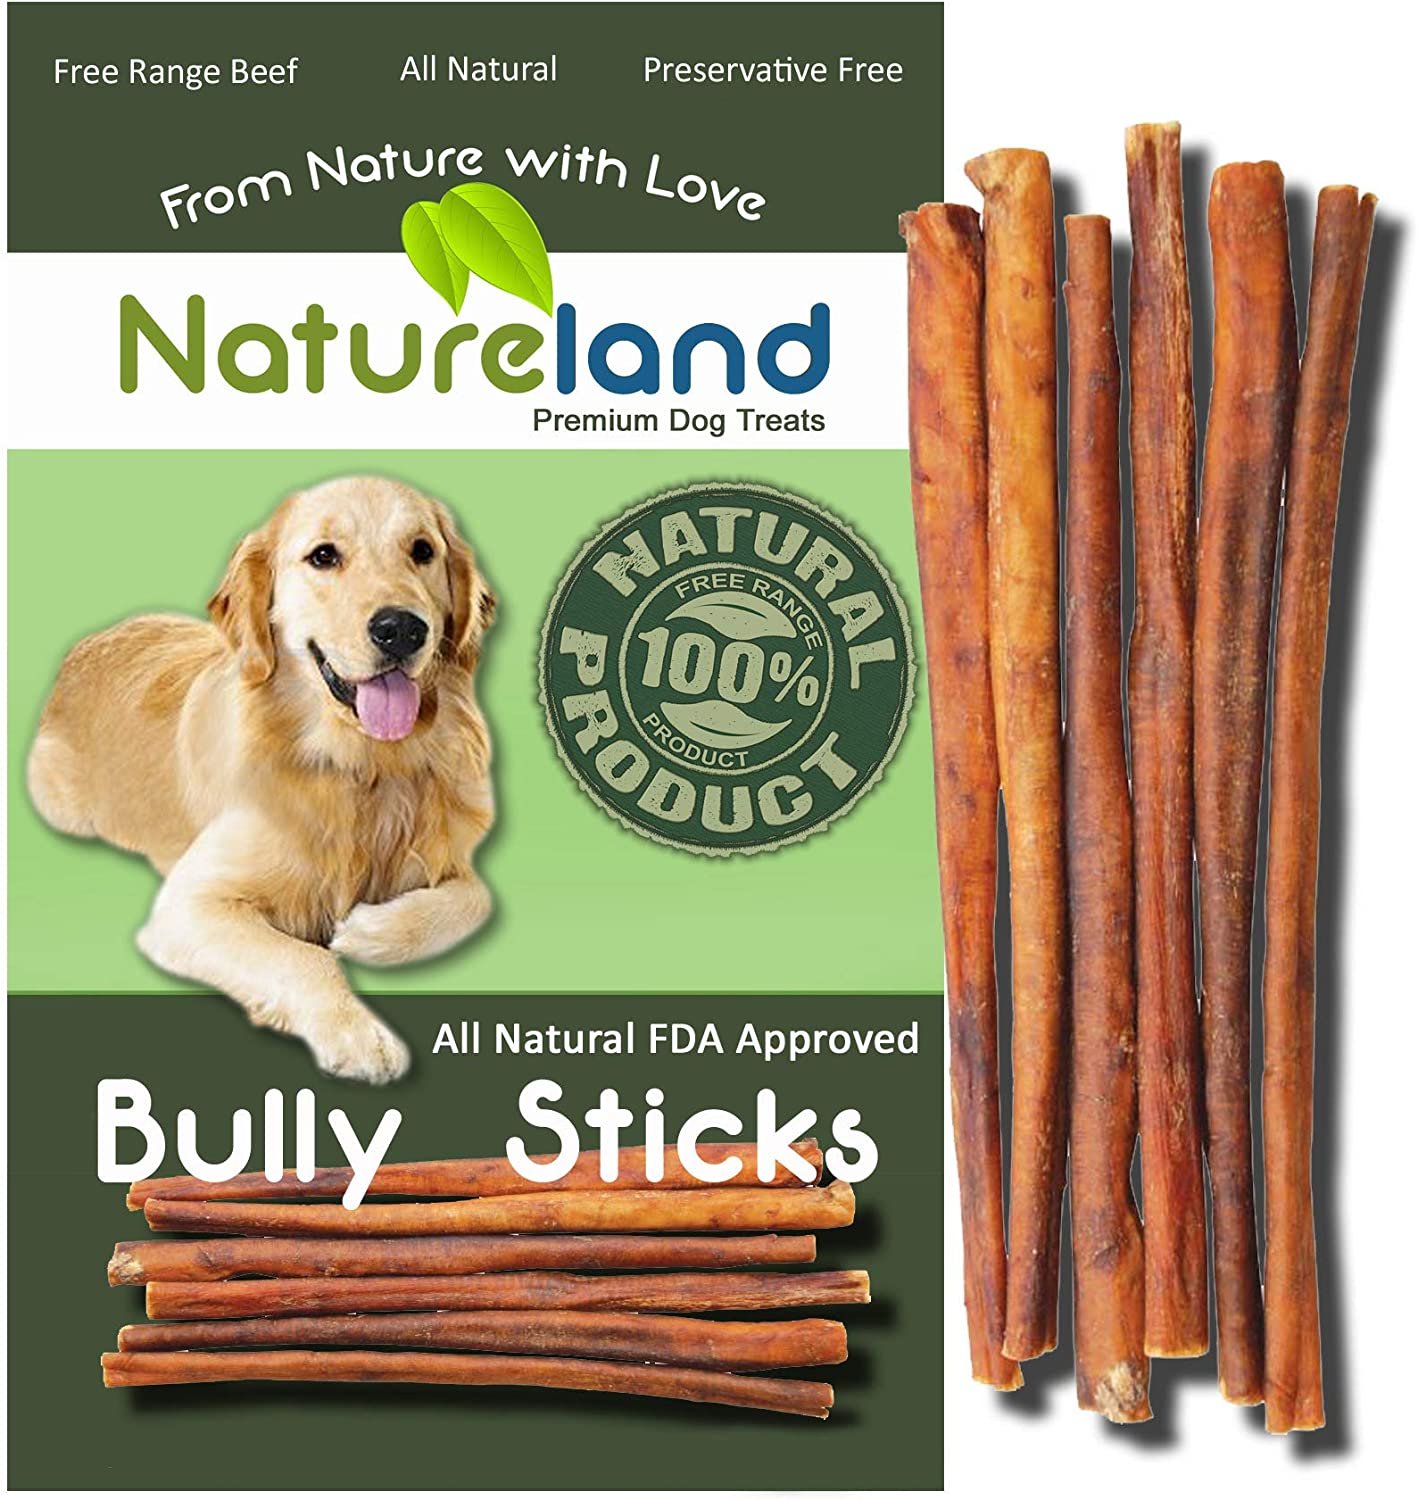 Natureland 6 Bully Sticks Thin – All-Natural, Free Range, Grass-Fed, 100 Beef Dog Chews